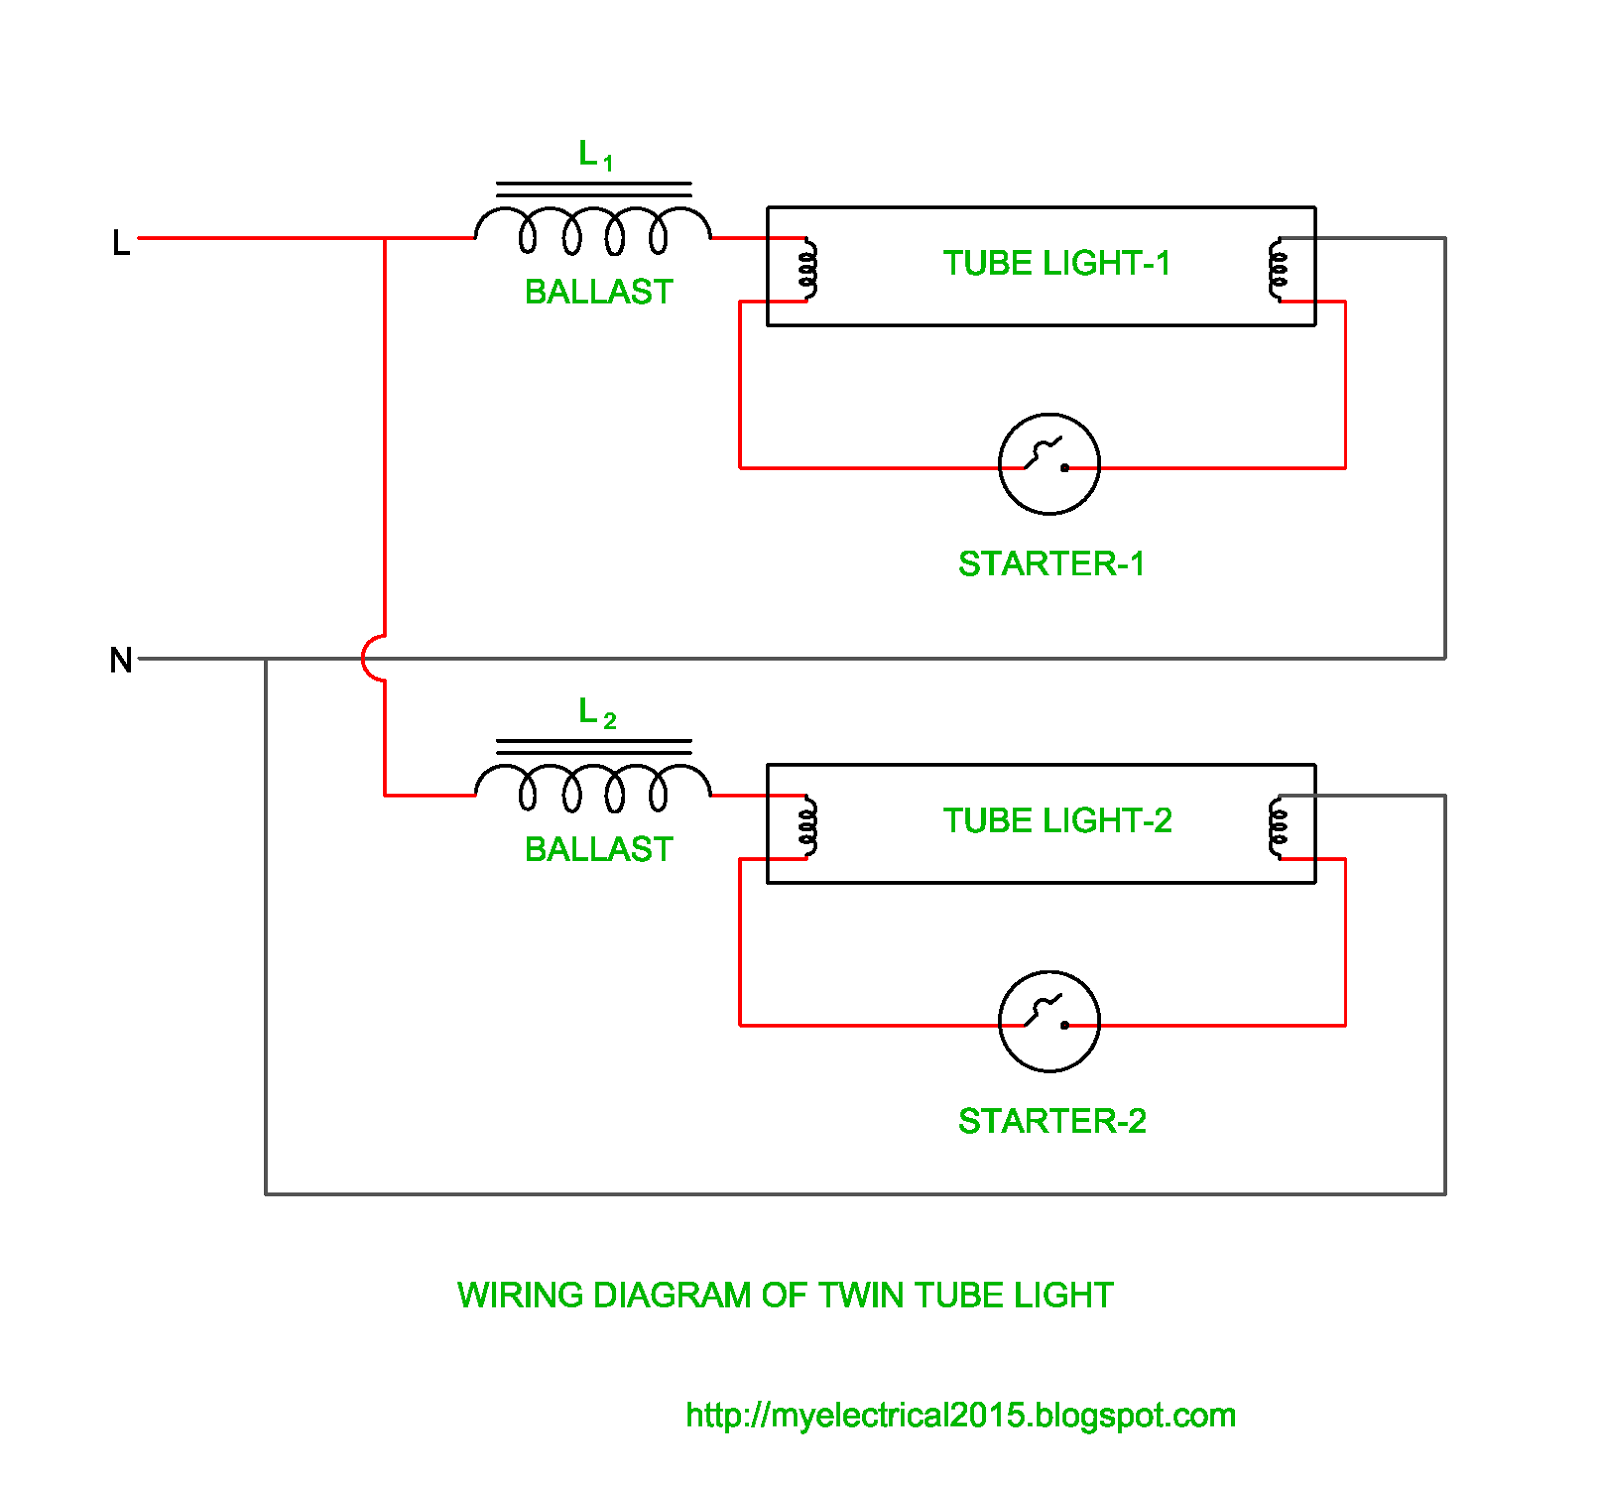 WIRING%2BDIAGRAM%2BOF%2BTWIN%2BTUBE%2BLIGHT  Lamp Ballast Wiring Schematic on 400 watt ballast wiring, t5 ballast wiring, electrical ballast wiring, 480 volt ballast wiring, universal lighting ballast wiring, light ballast wiring, high pressure sodium ballast wiring, 20 watt ballast wiring, 120 volt ballast wiring,